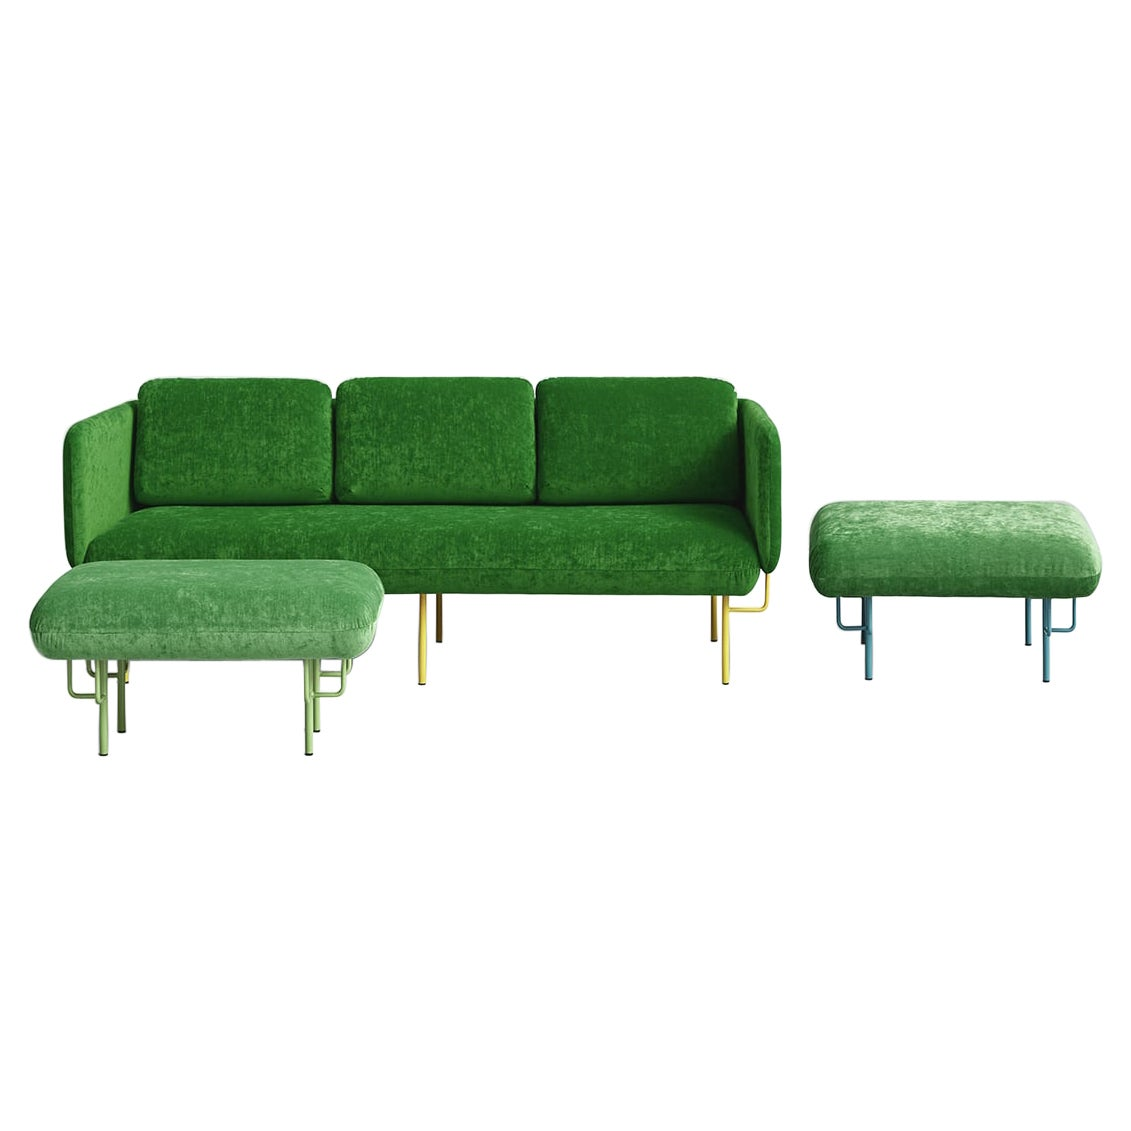 Set of Large Green Alce Sofa and 2 Large Ottomans by Chris Hardy